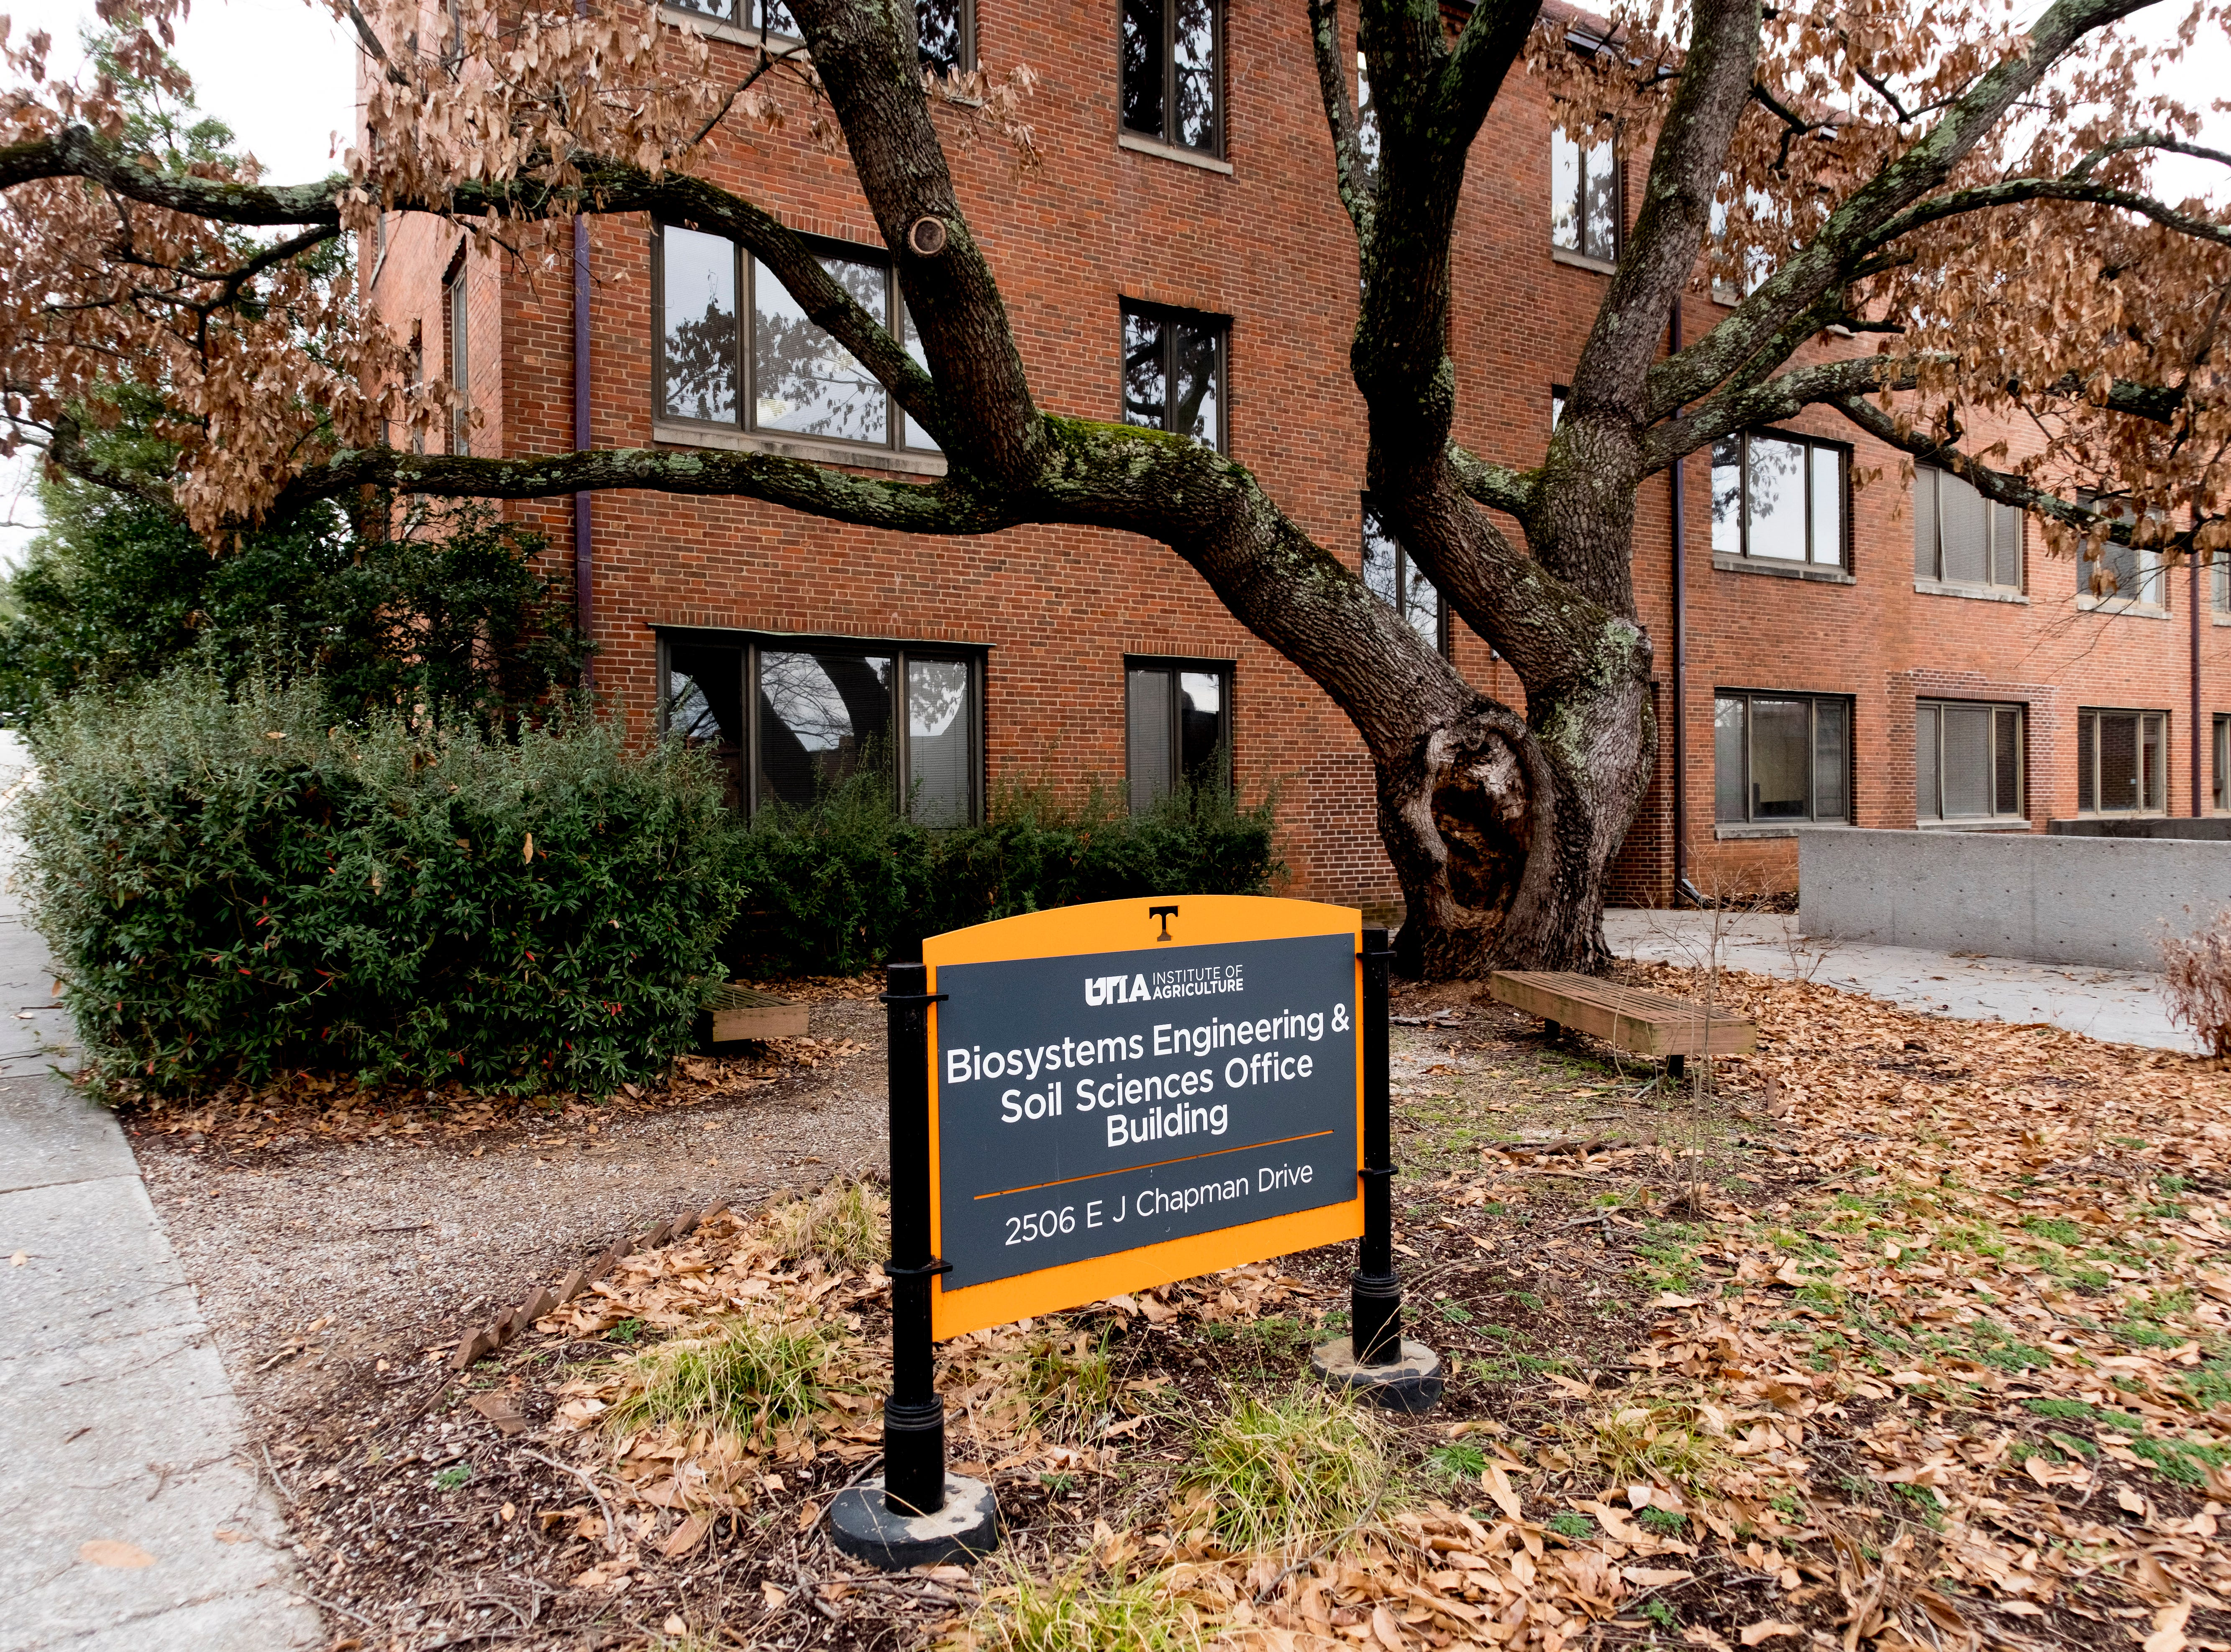 Biosystems Engineering and Environmental Sciences Offices on the University of Tennessee campus in Knoxville, Tennessee on Wednesday, January 2, 2019.